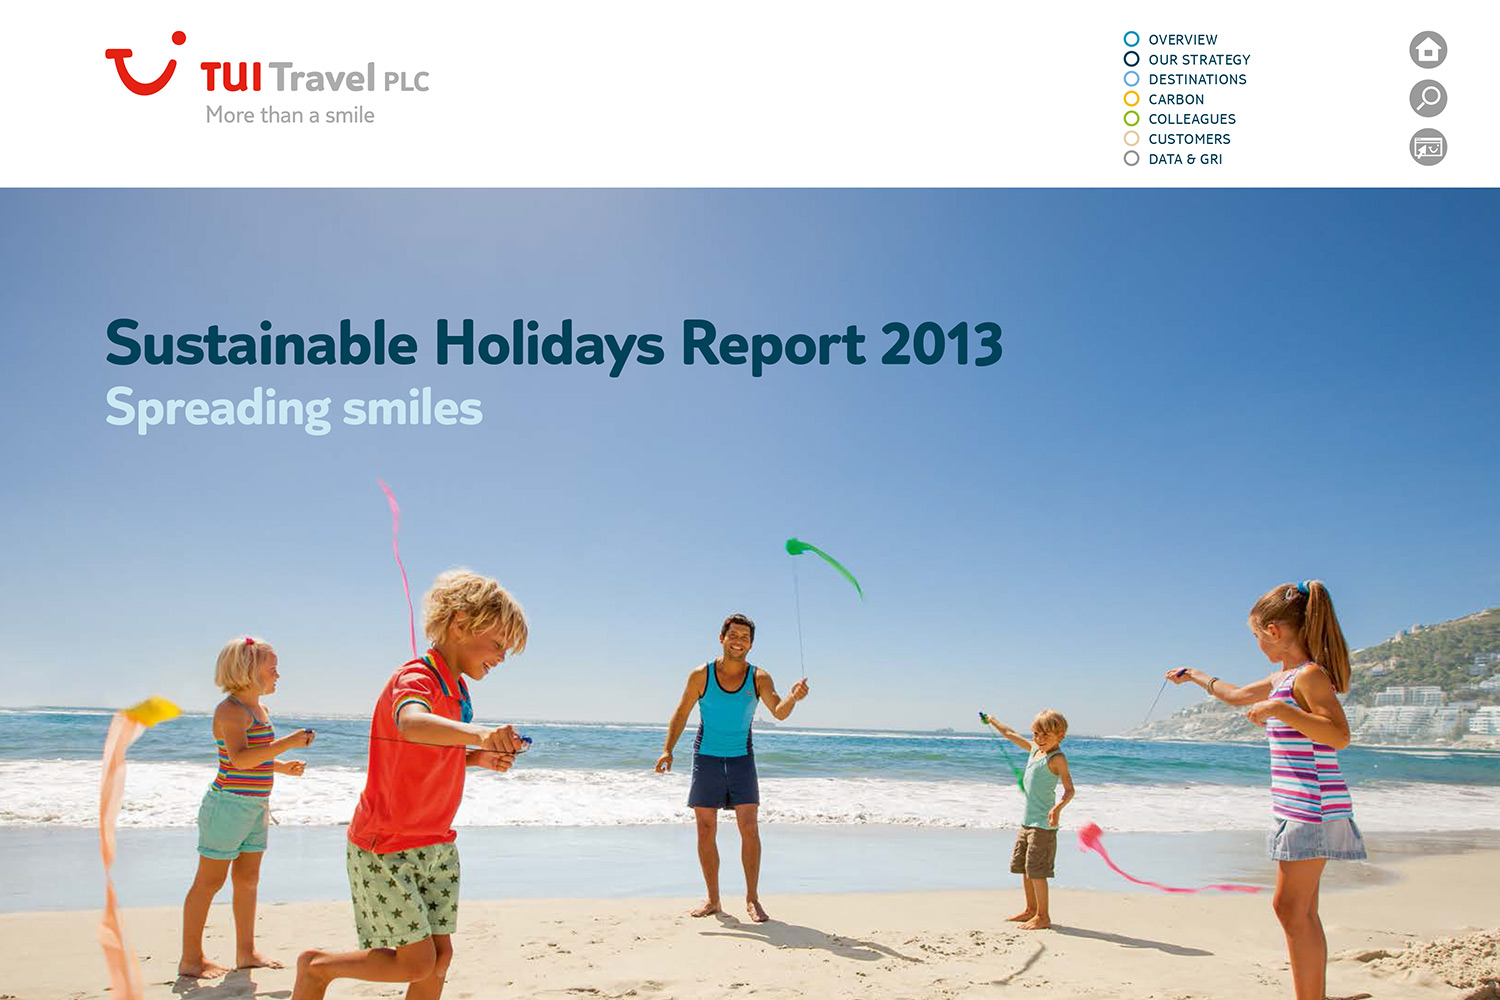 Tui Sustainable Holidays Report 2013